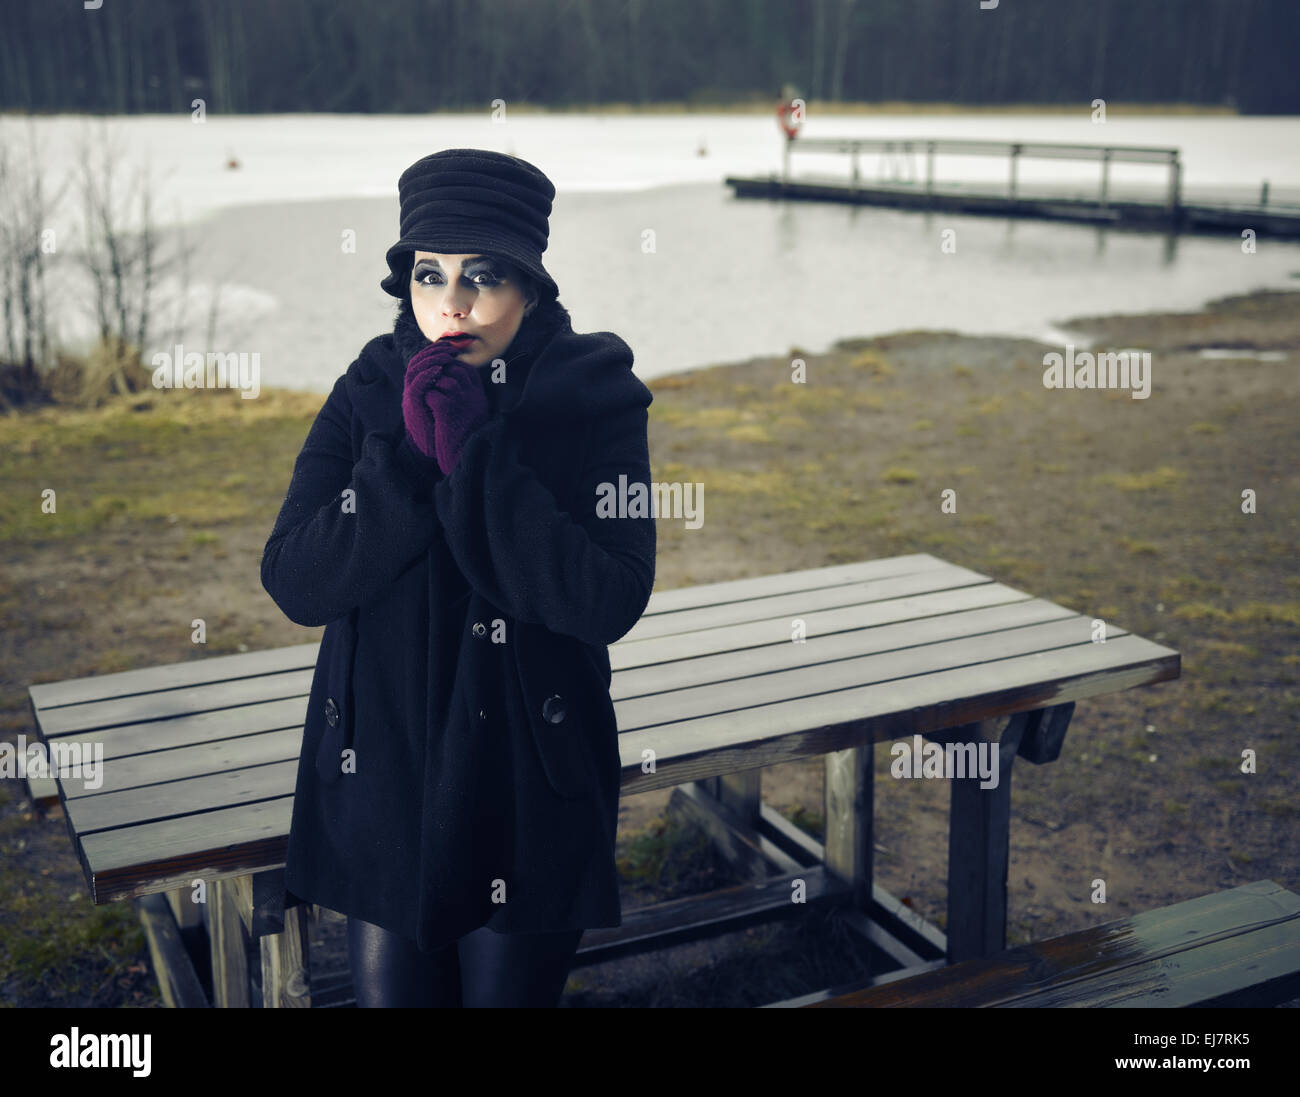 Fearful fashion woman wearing a winter coat and hat and she posing in a wintry beach, cold rainy weather, cross processed image Stock Photo